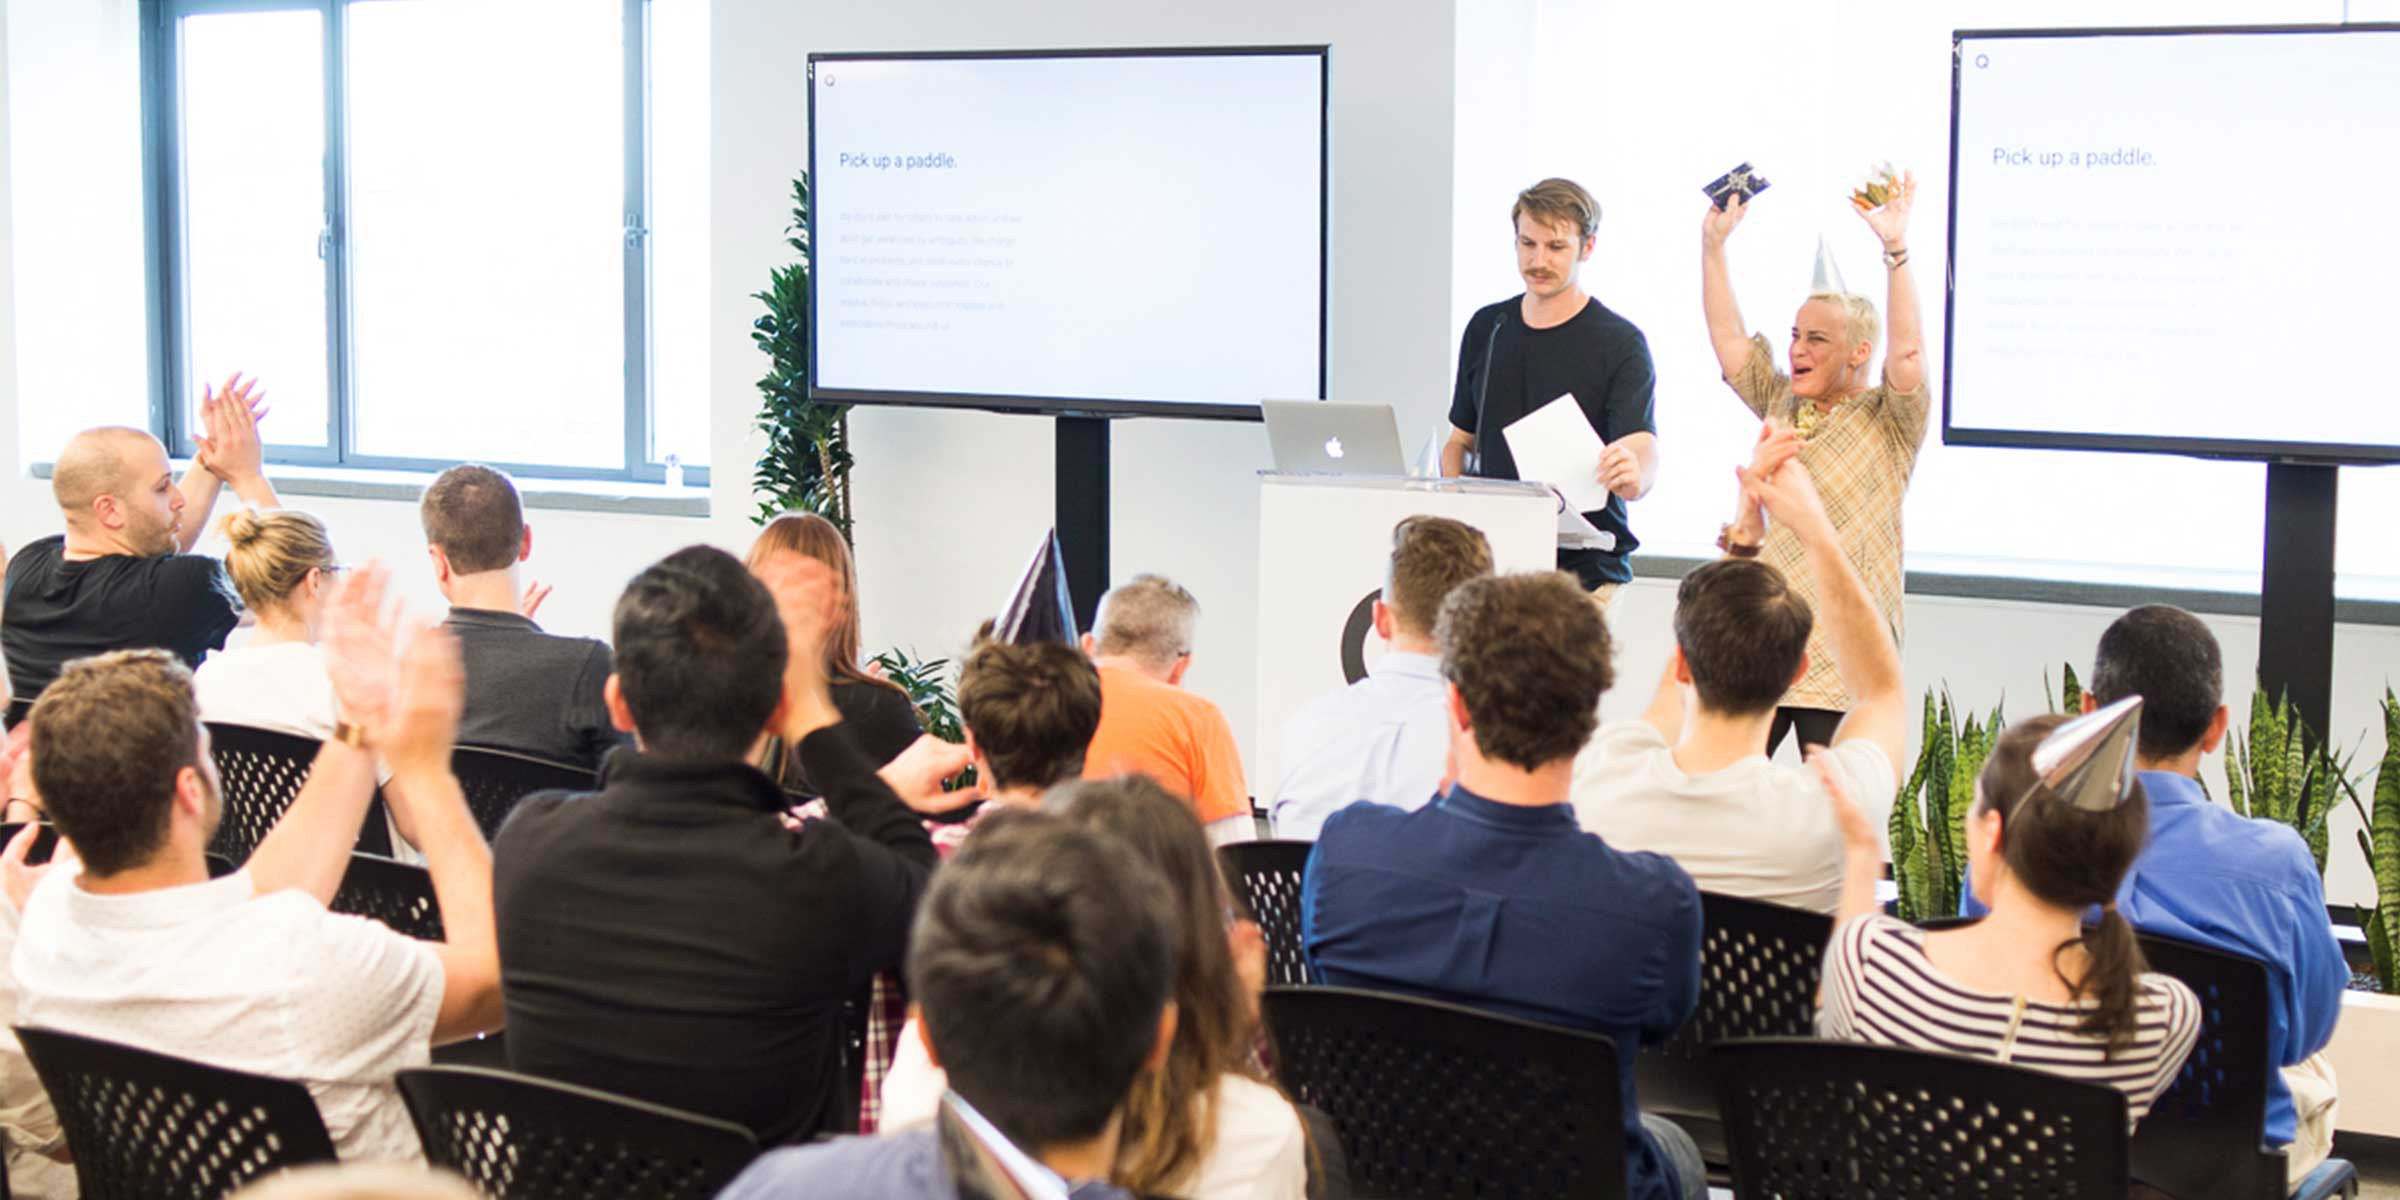 Founder's Guide to Running a Successful All-Hands